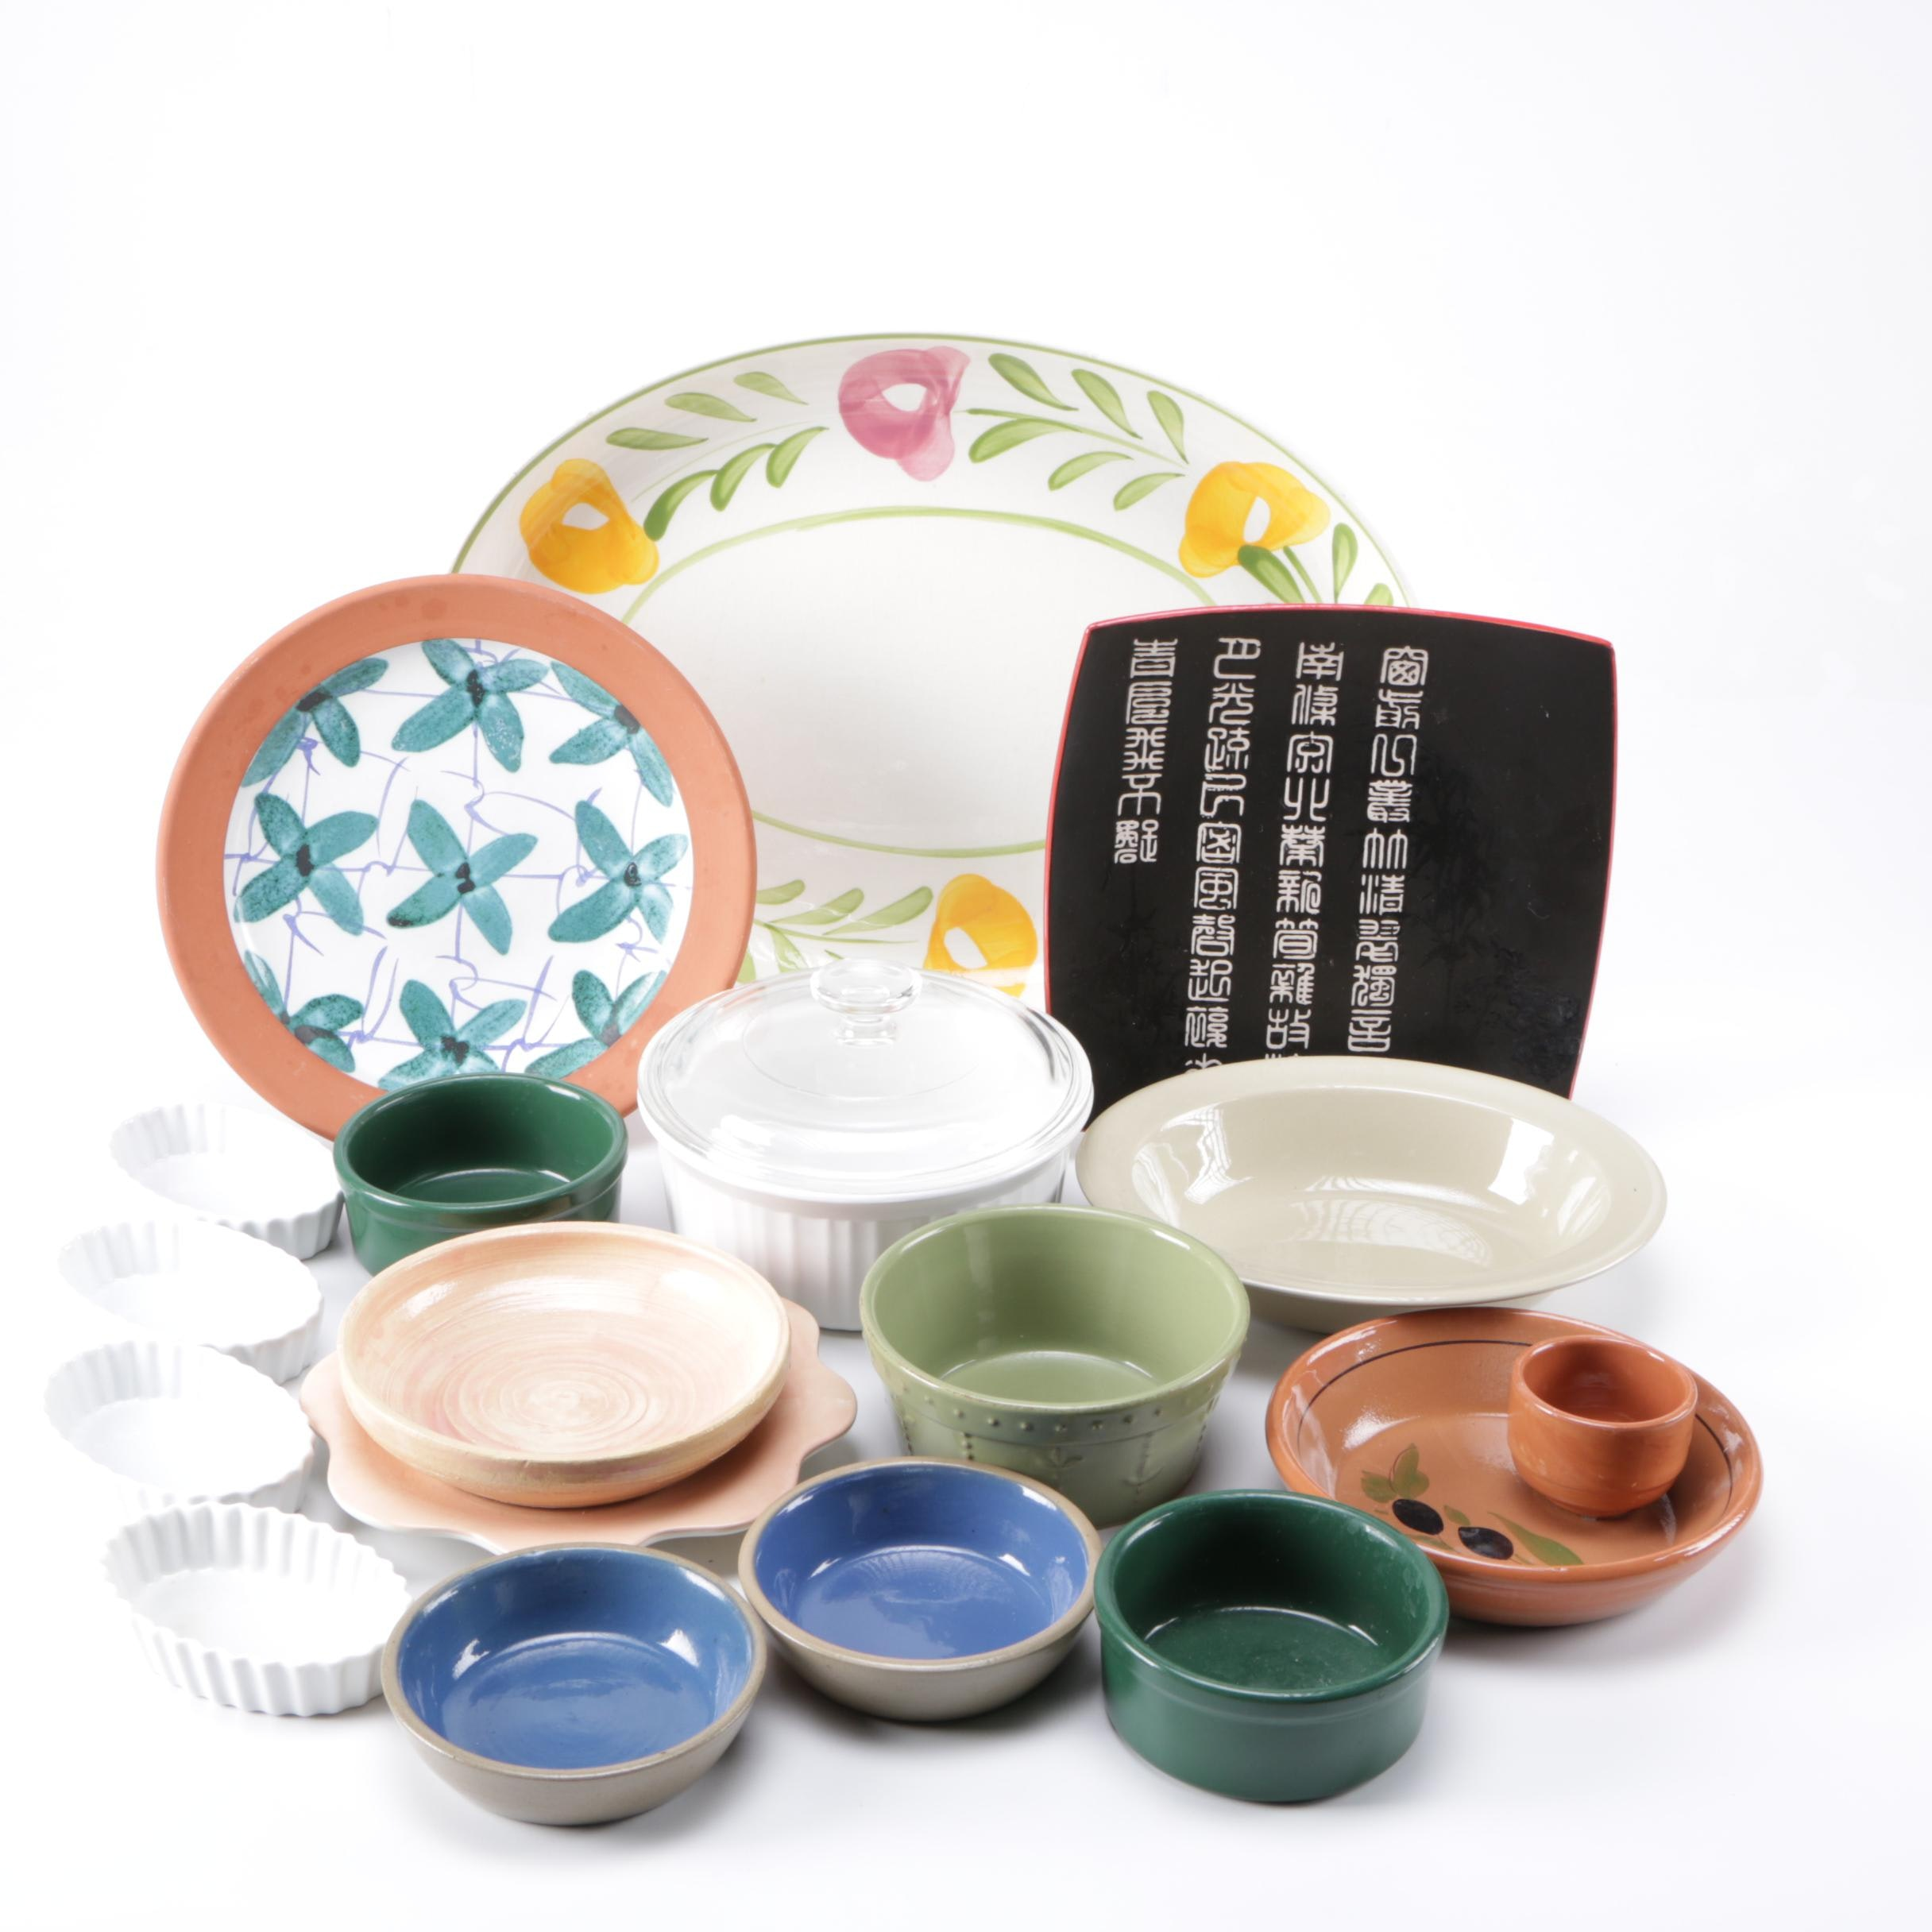 Assortment of Kitchenware Featuring Crate & Barrel